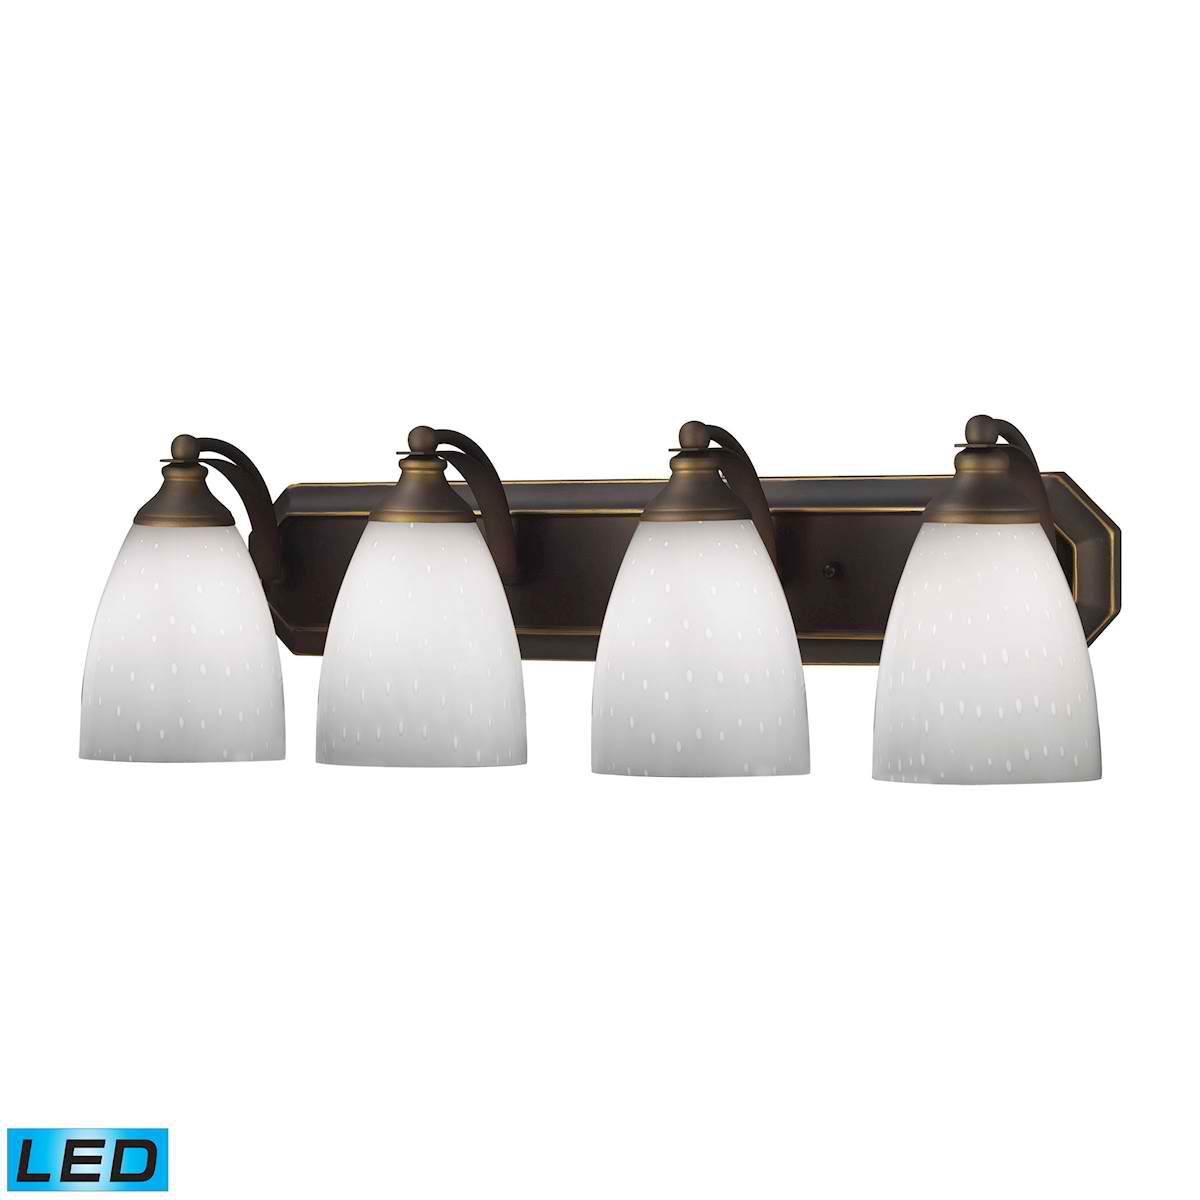 4 Light Vanity in Aged Bronze and Simply White Glass - LED, 800 Lumens (3200 Lumens Total) with Full Scale